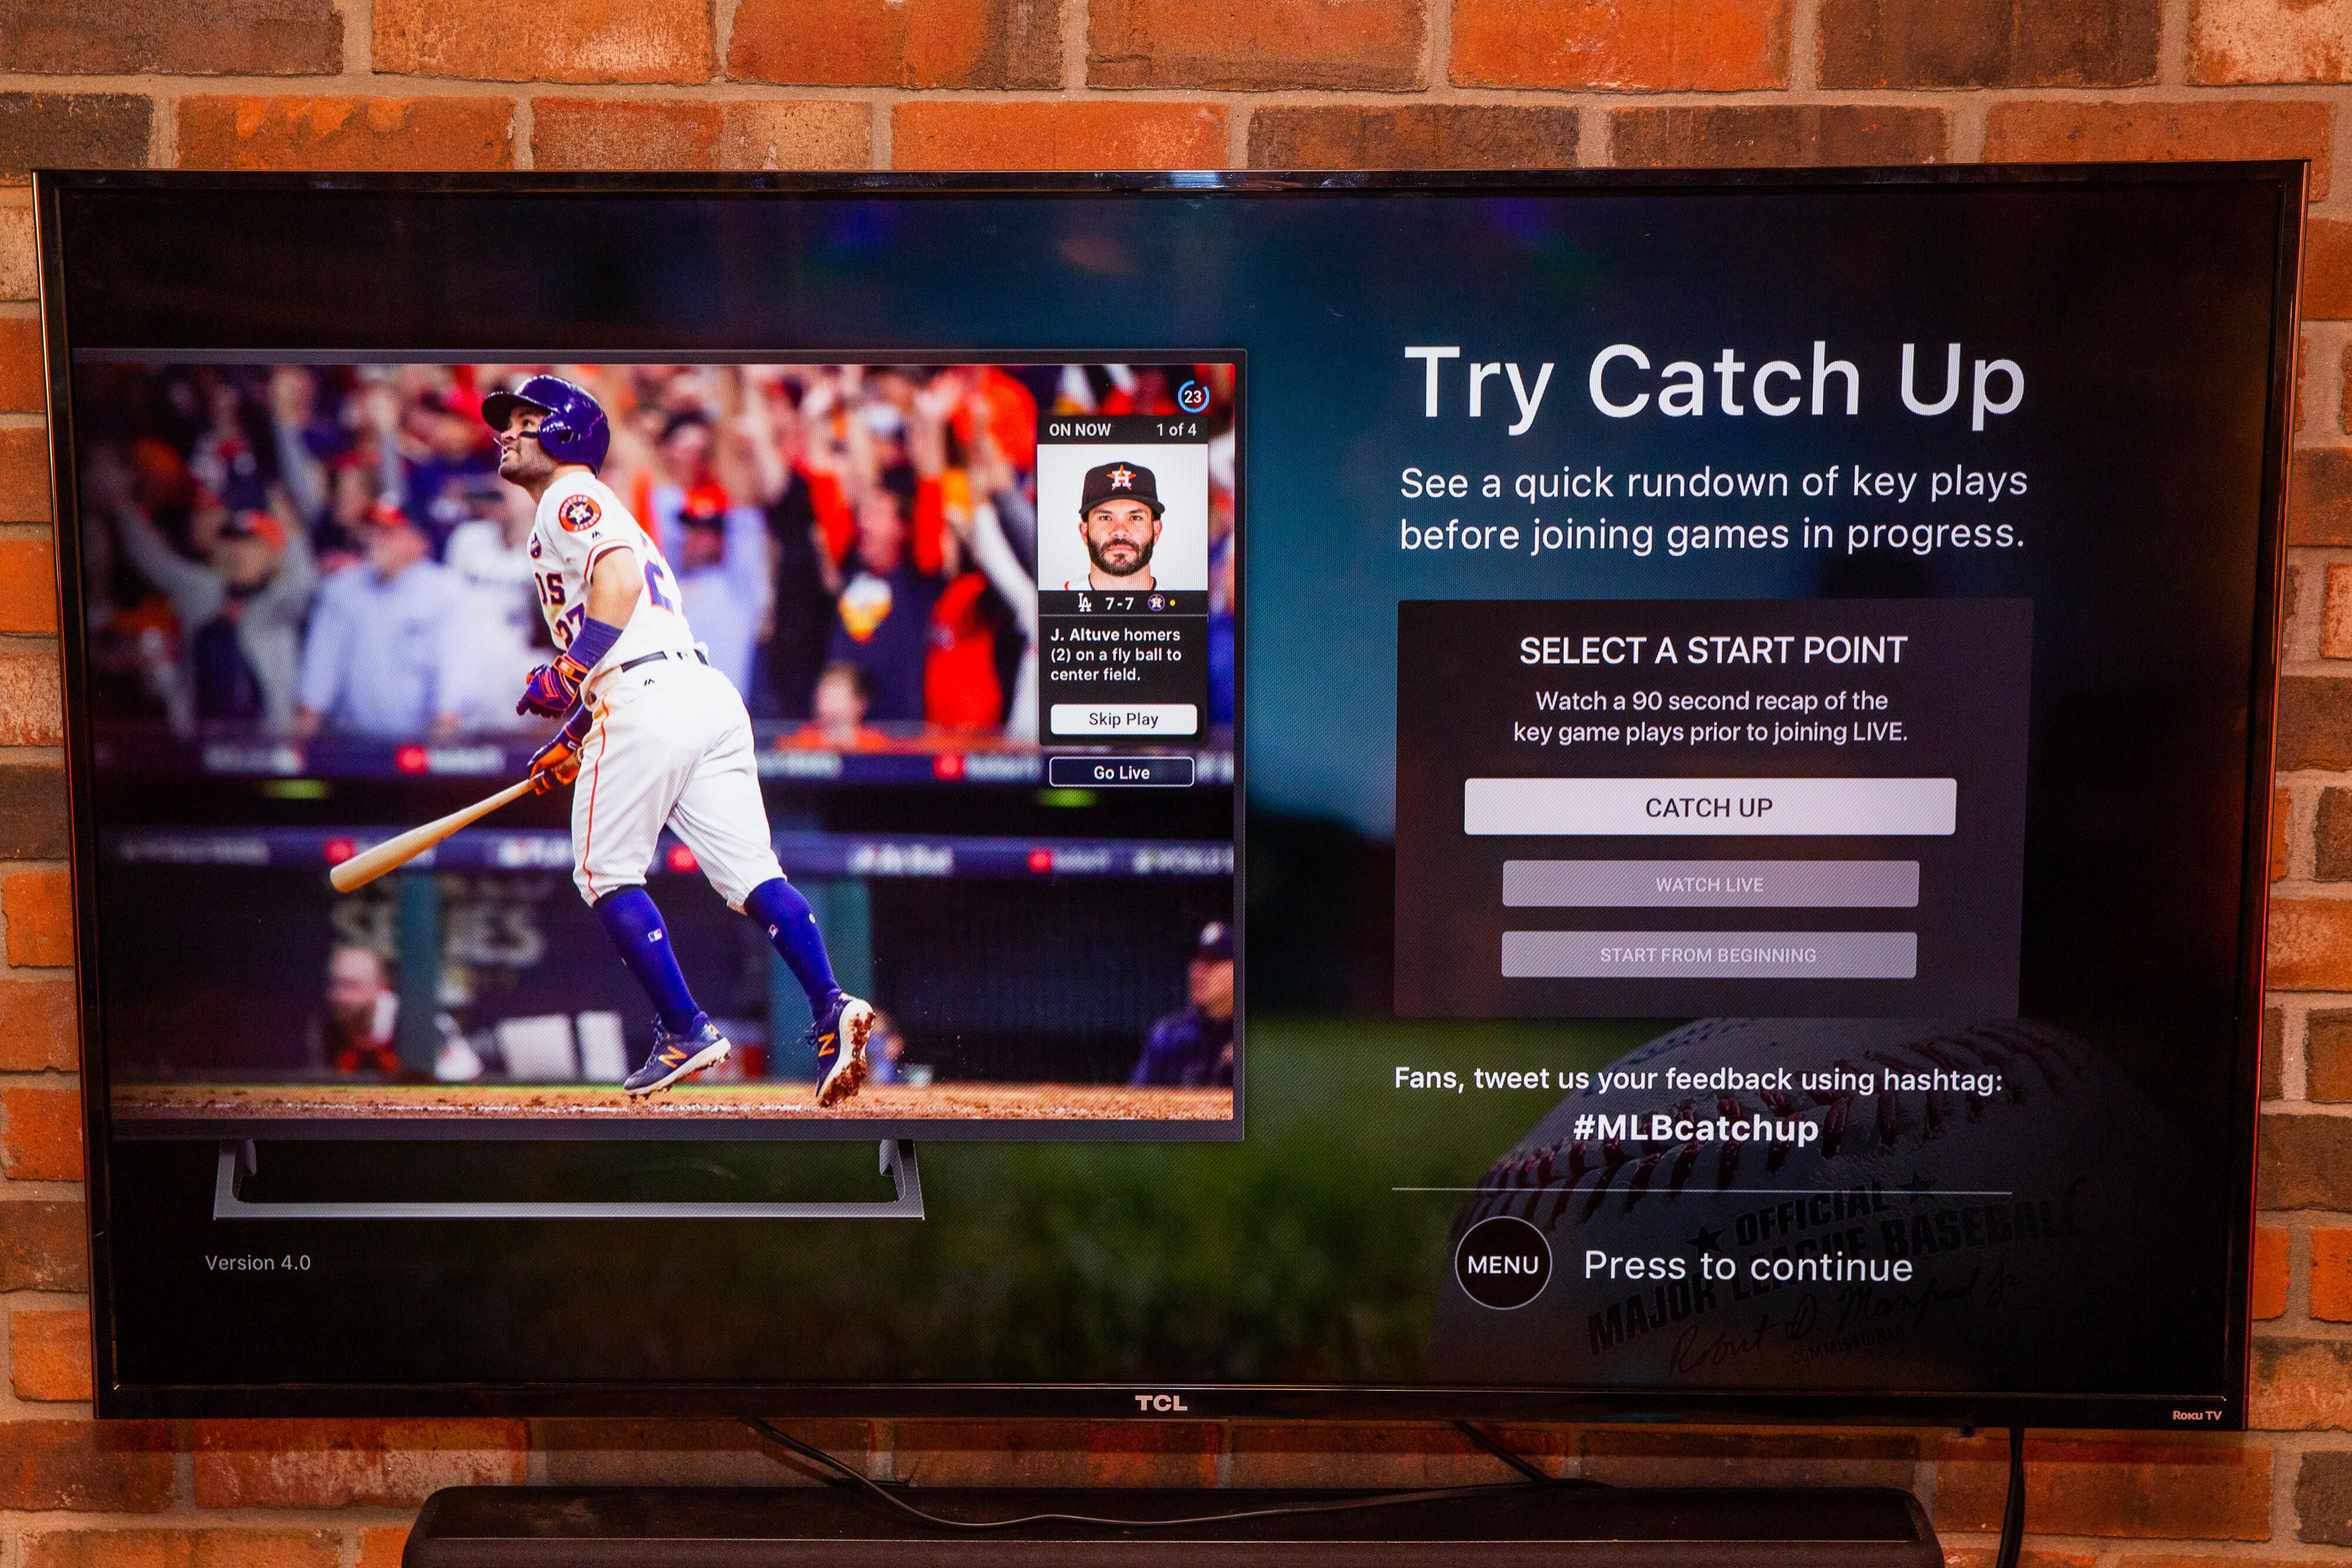 003-mlb-tv-streaming-app-2021-cnet-review